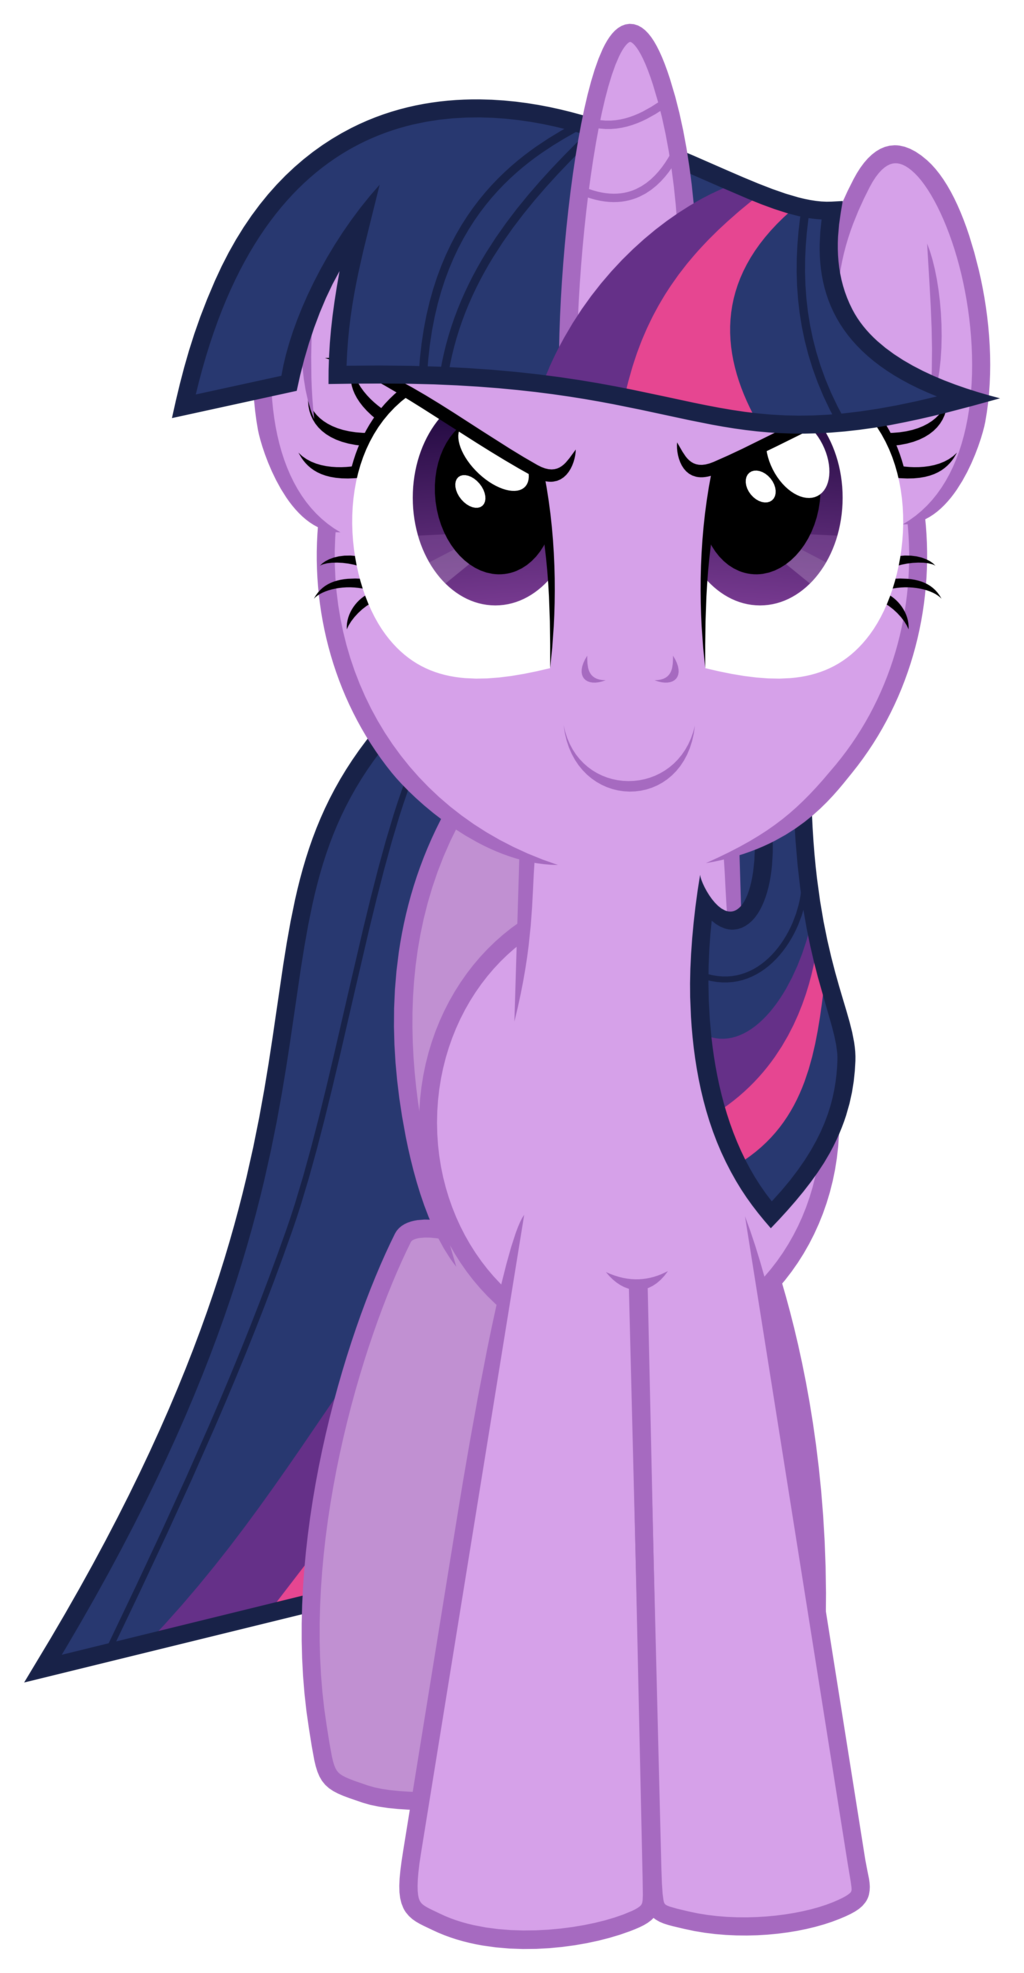 Twilight sparkle confused png. By zutheskunk d ooitd